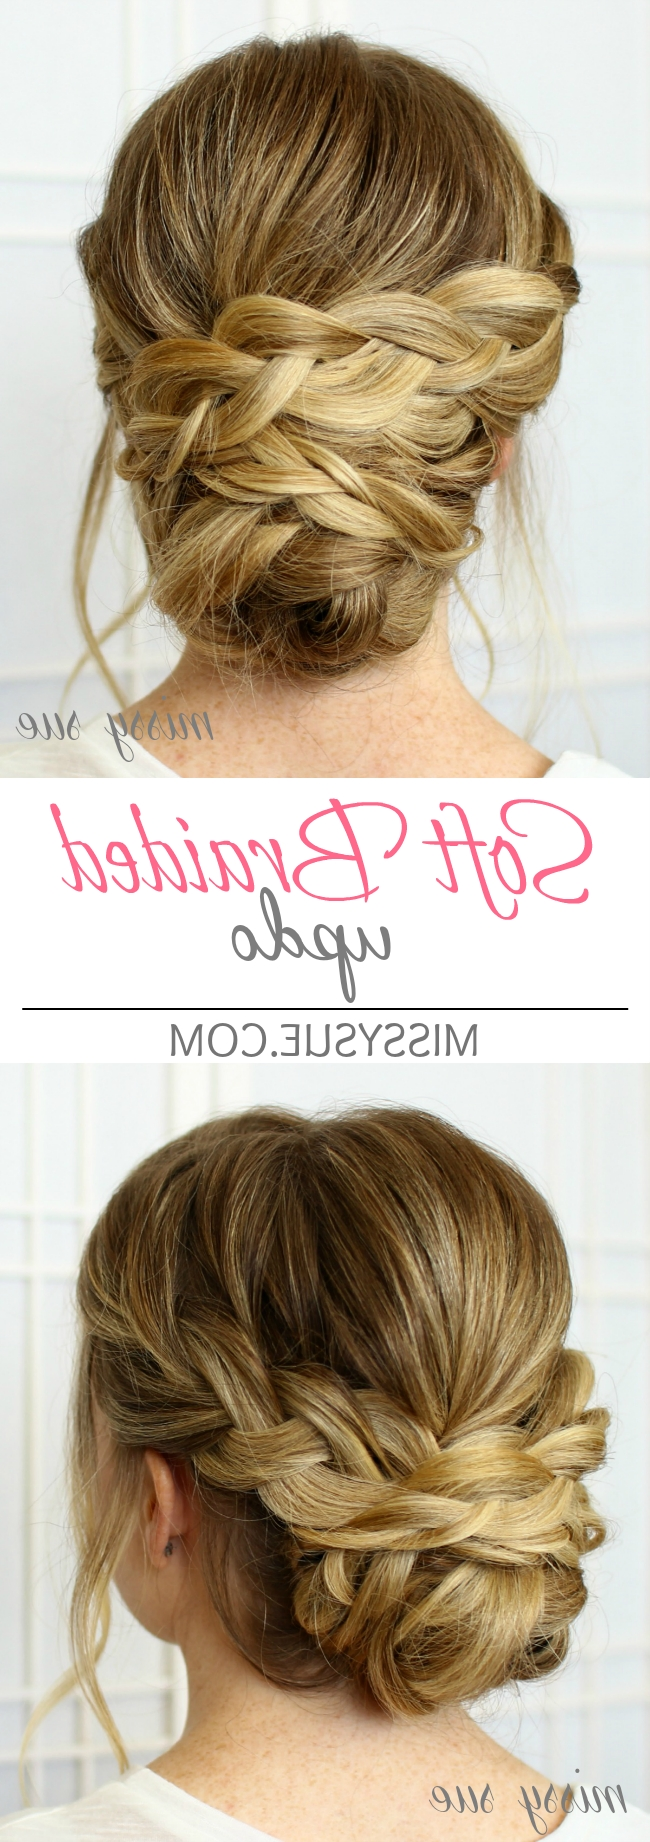 Soft Braided Updo Throughout 2017 Braided Updo Hairstyles For Weddings (View 5 of 15)